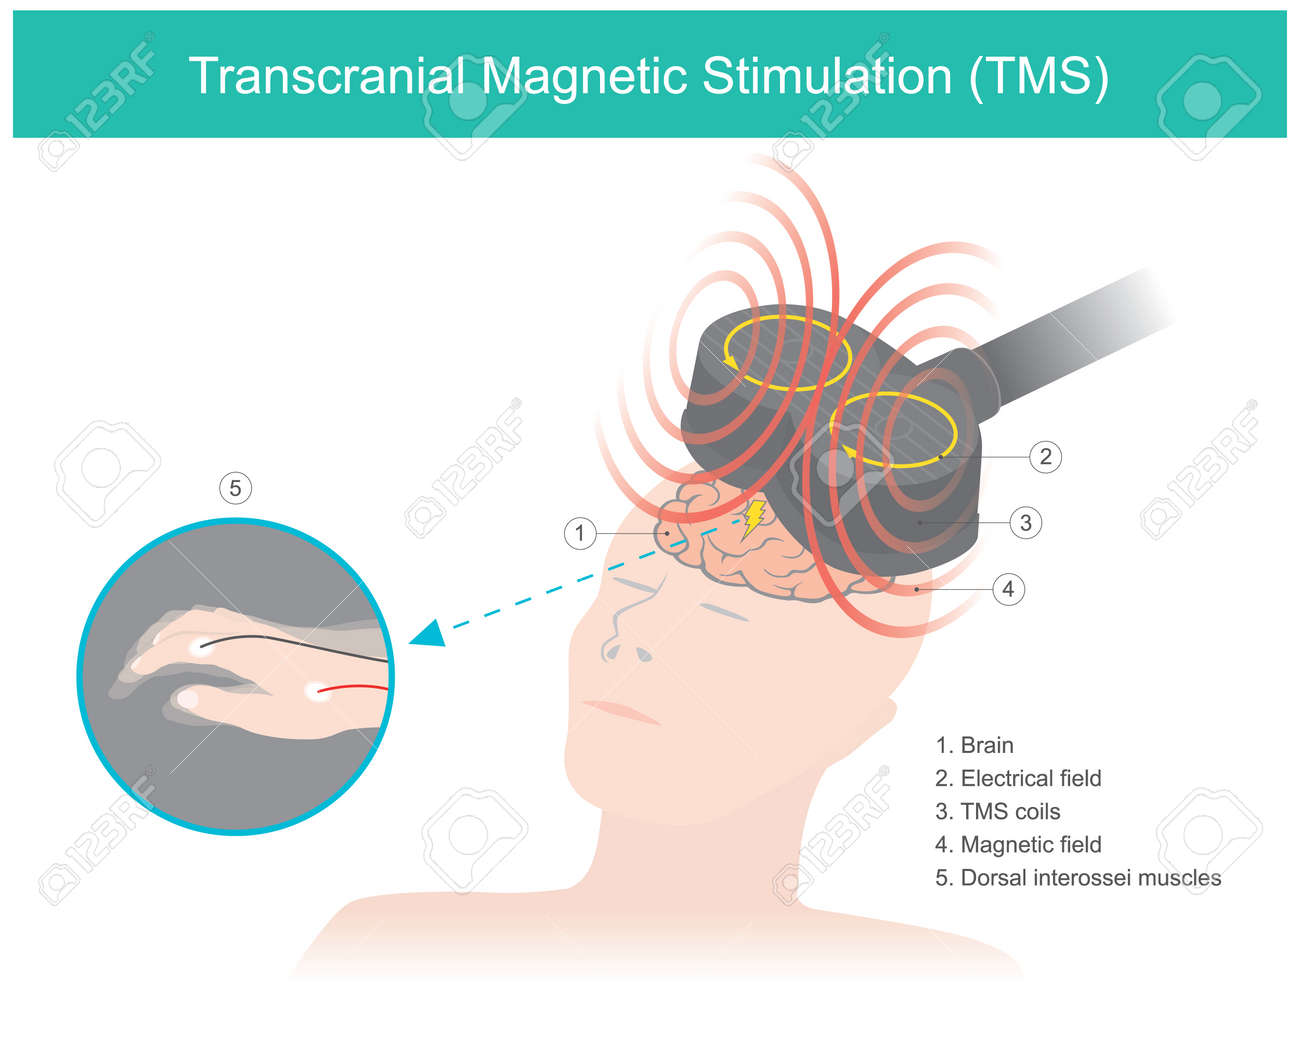 Transcranial Magnetic Stimulation (TMS). The brain stimulation in which a changing magnetic field is used to cause electric current. Healthcare and medical illustration. - 166227163